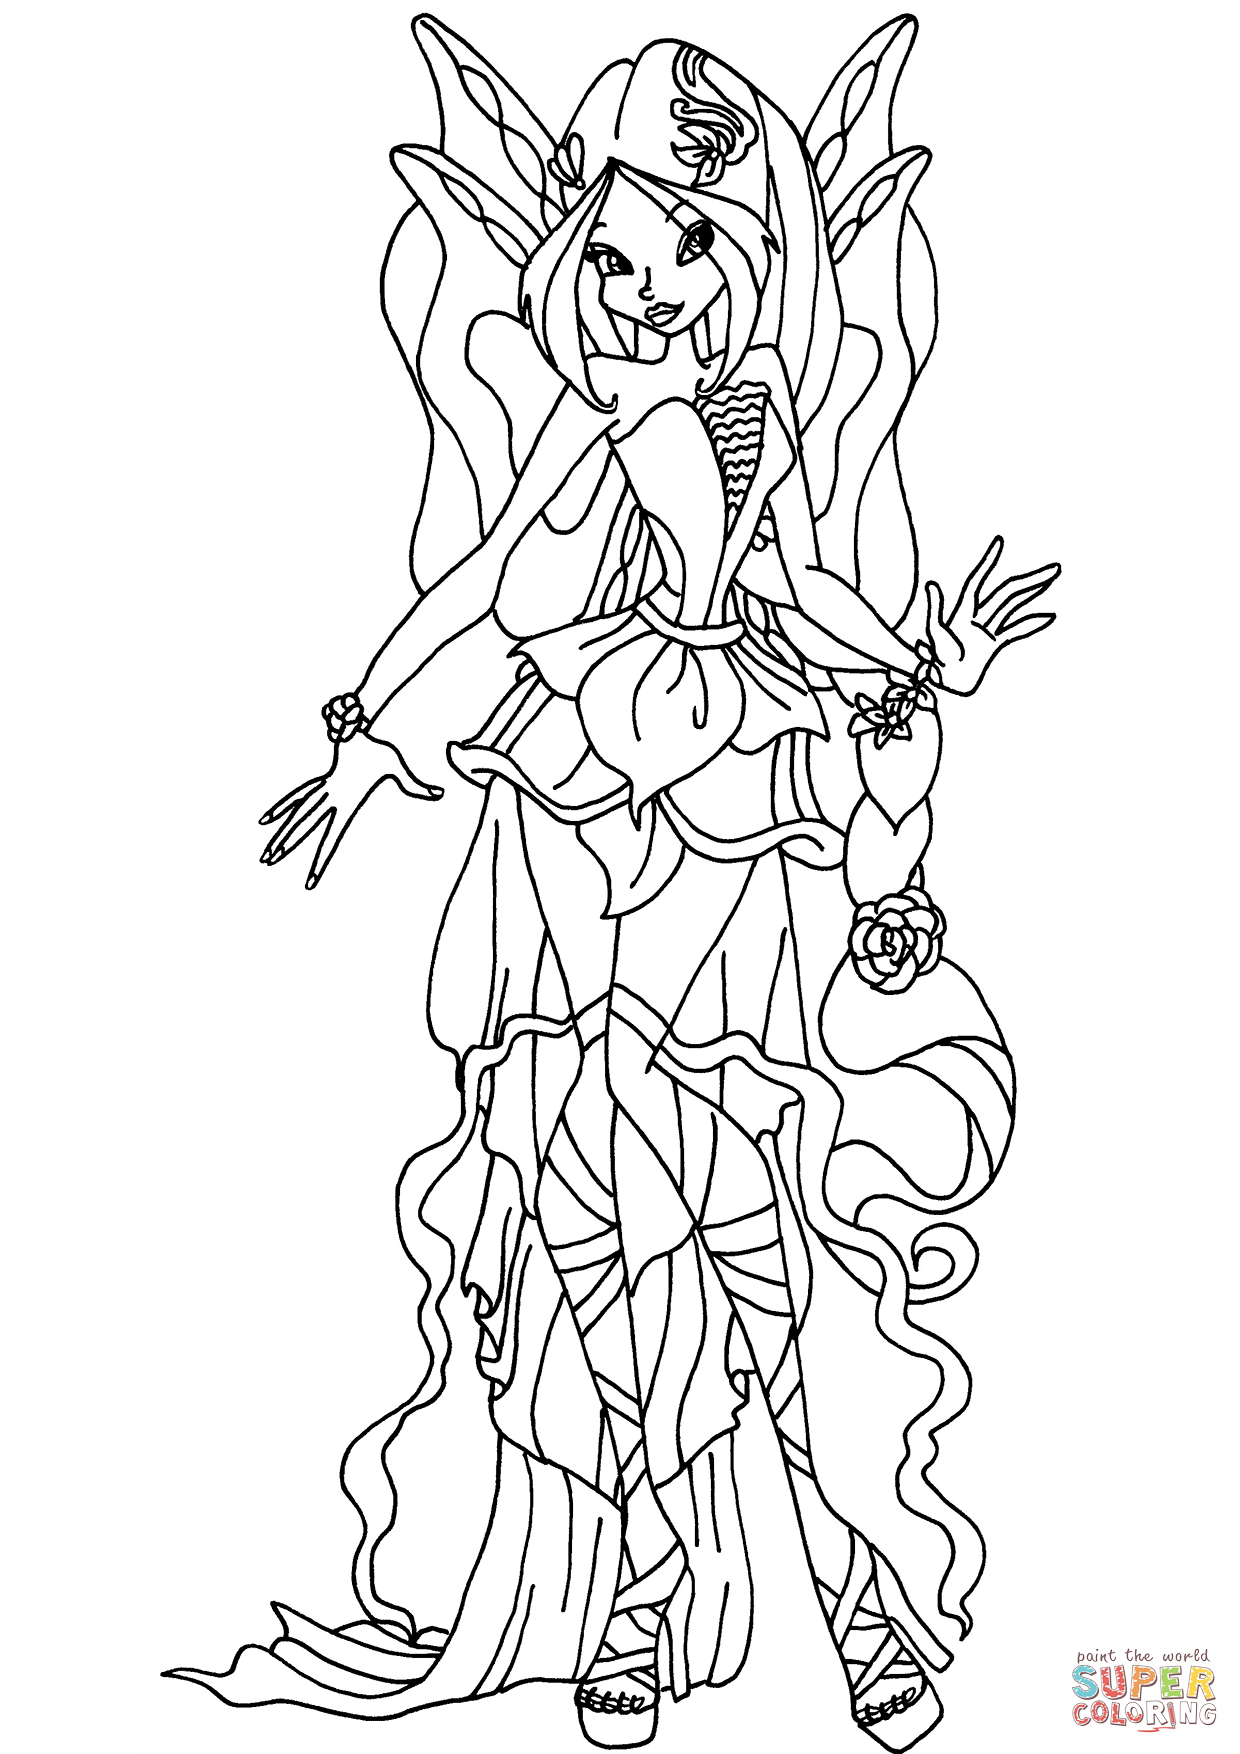 winx club sophix coloring pages - winx club aisha sophix coloring ... | 1754x1240